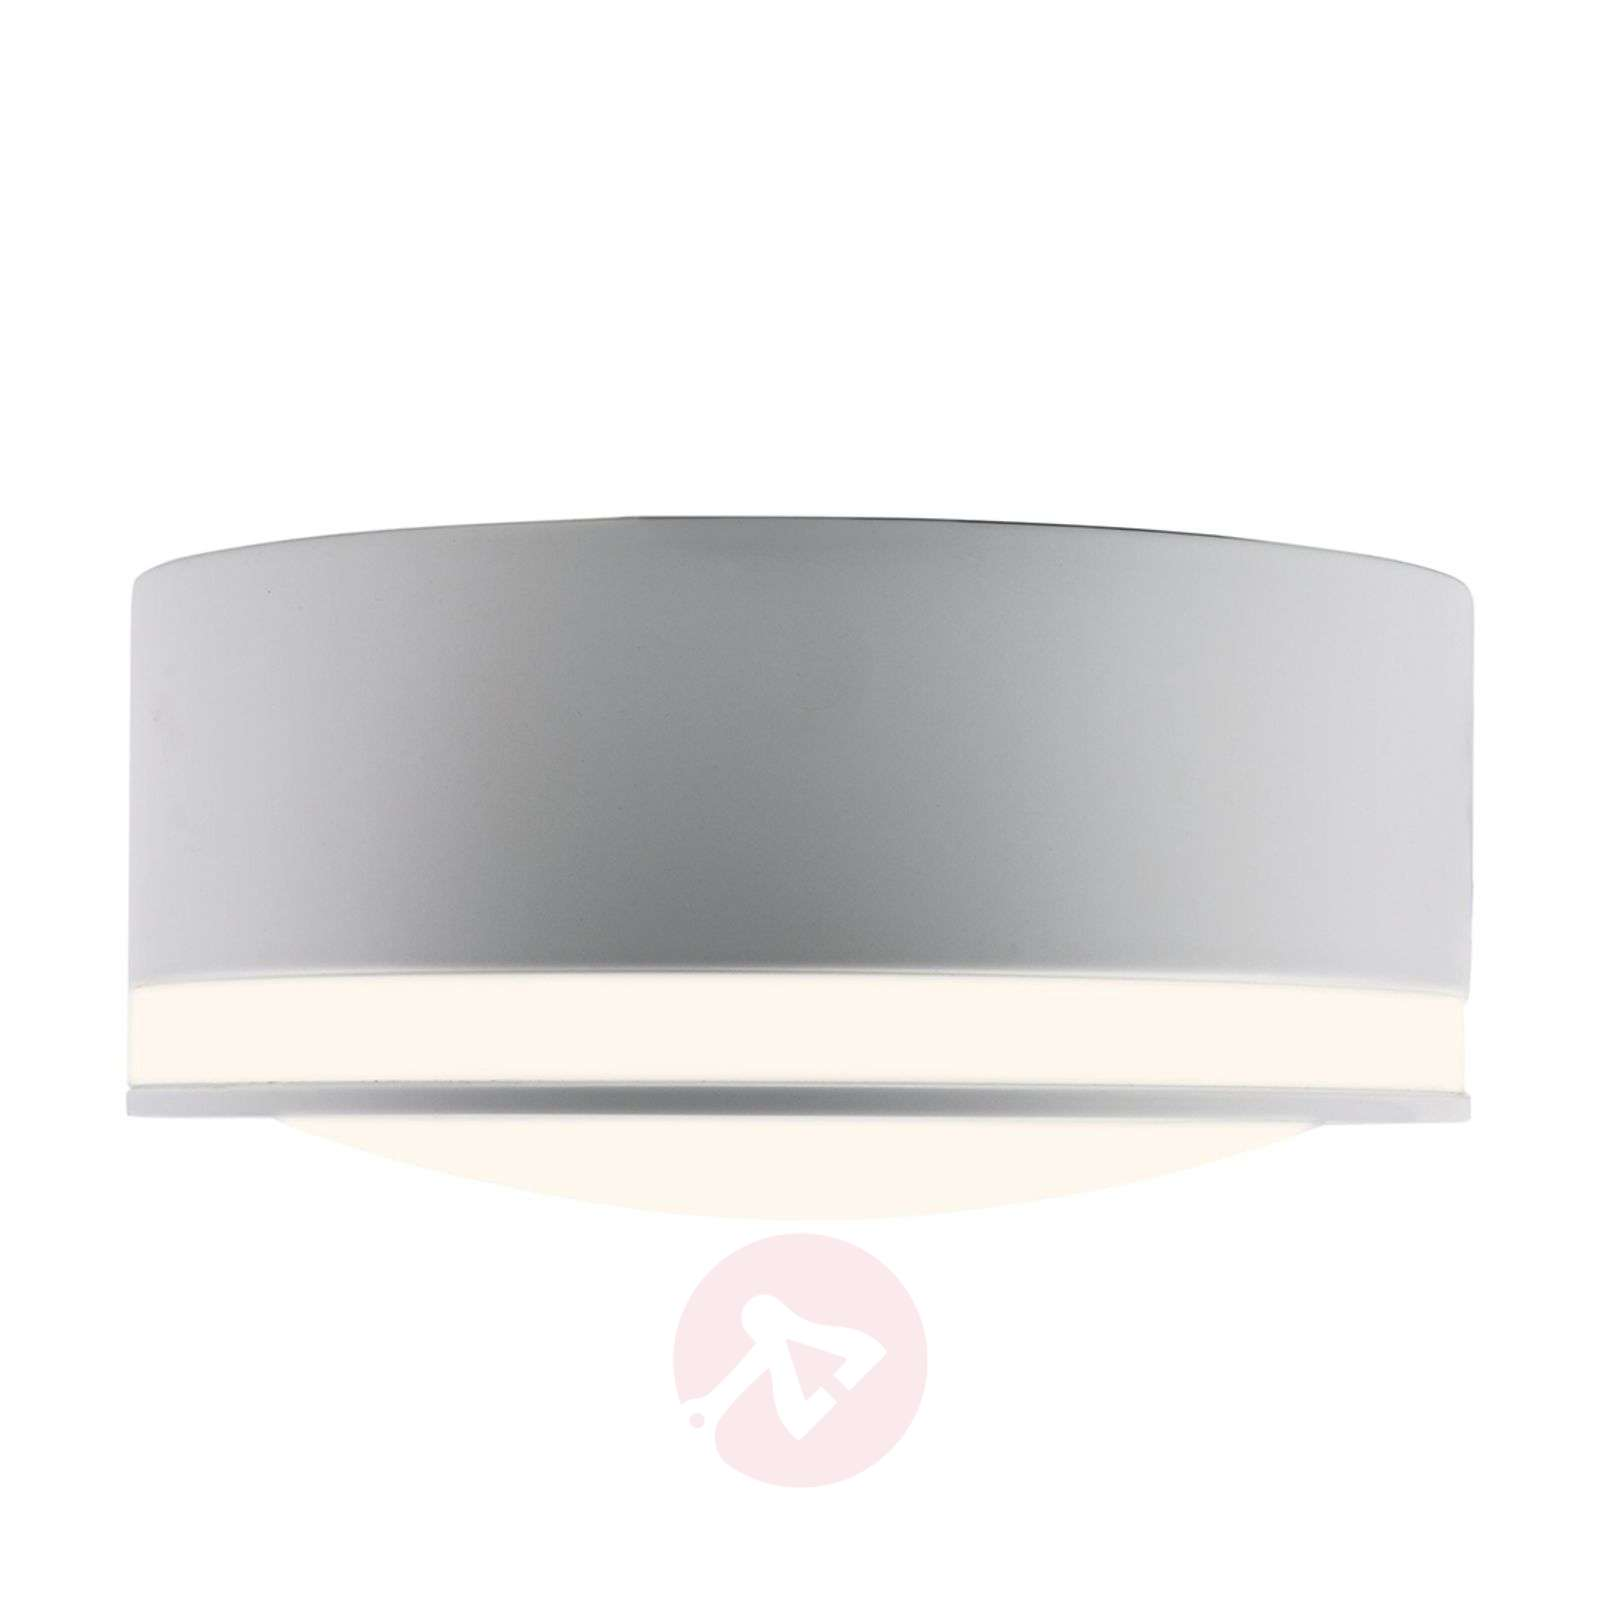 Round Biala Led Surface Mounted Spotlight 10 Cm Ø 9506132 01